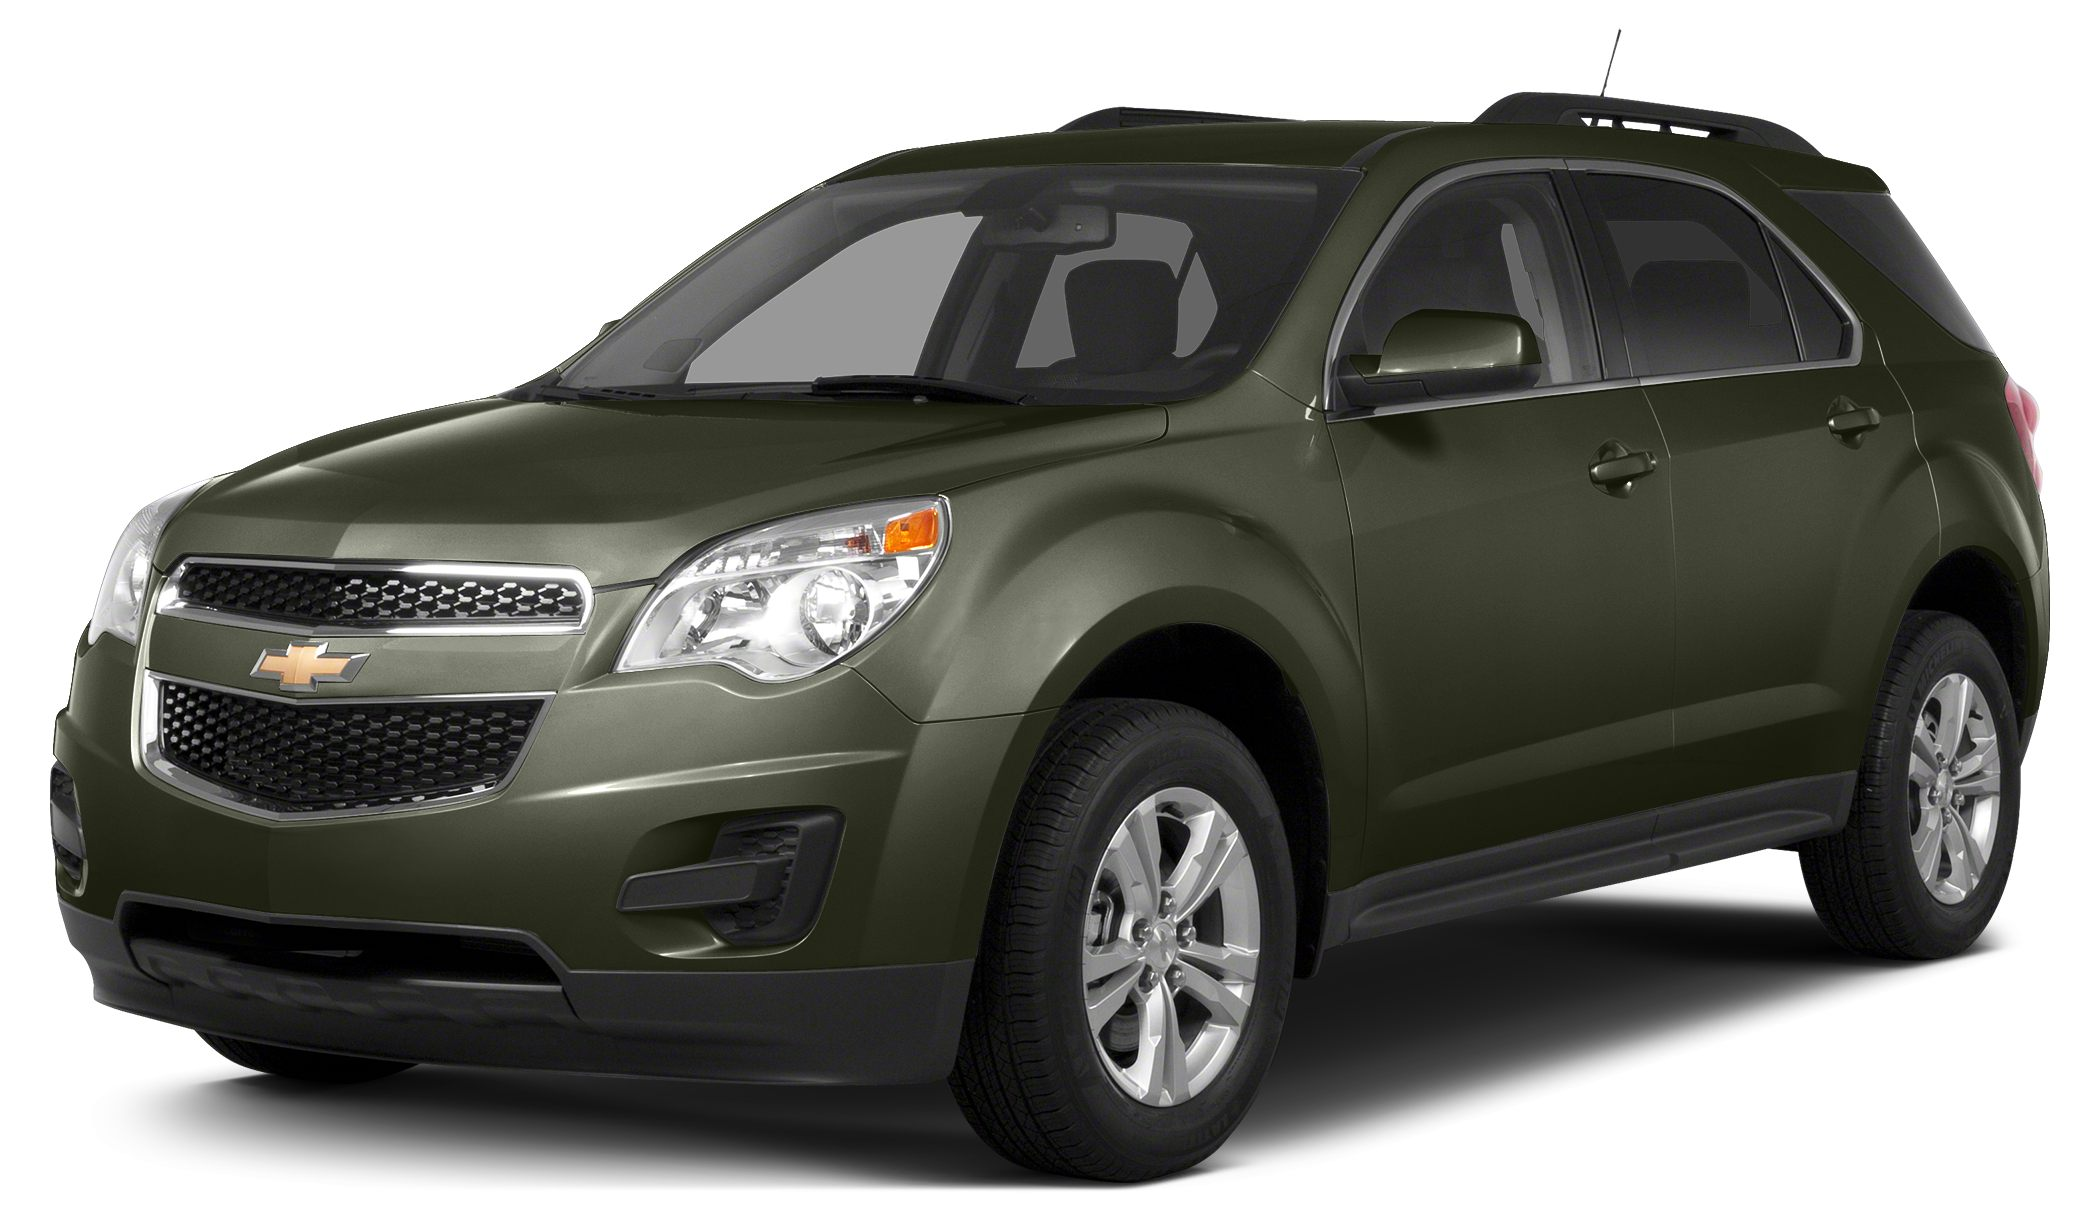 2013 Chevrolet Equinox 1LT Clean Carfax - 1 Owner - GM Certified - AWD - 18 Chrome-Clad Aluminum W